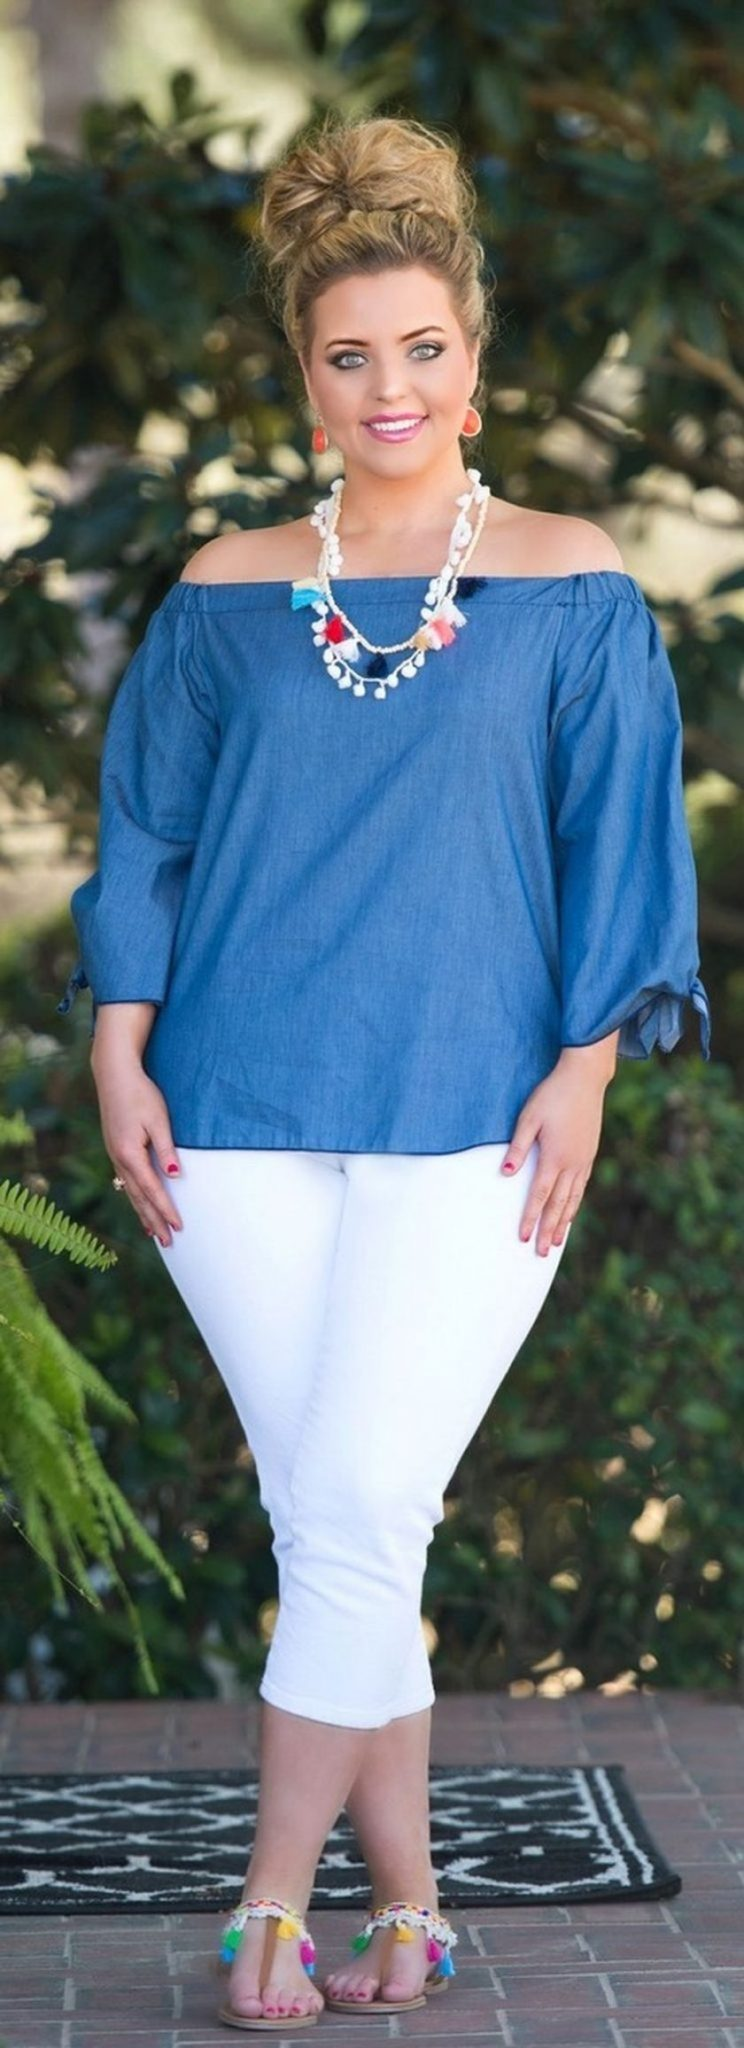 Summer casual work outfits ideas for plus size 48 ...